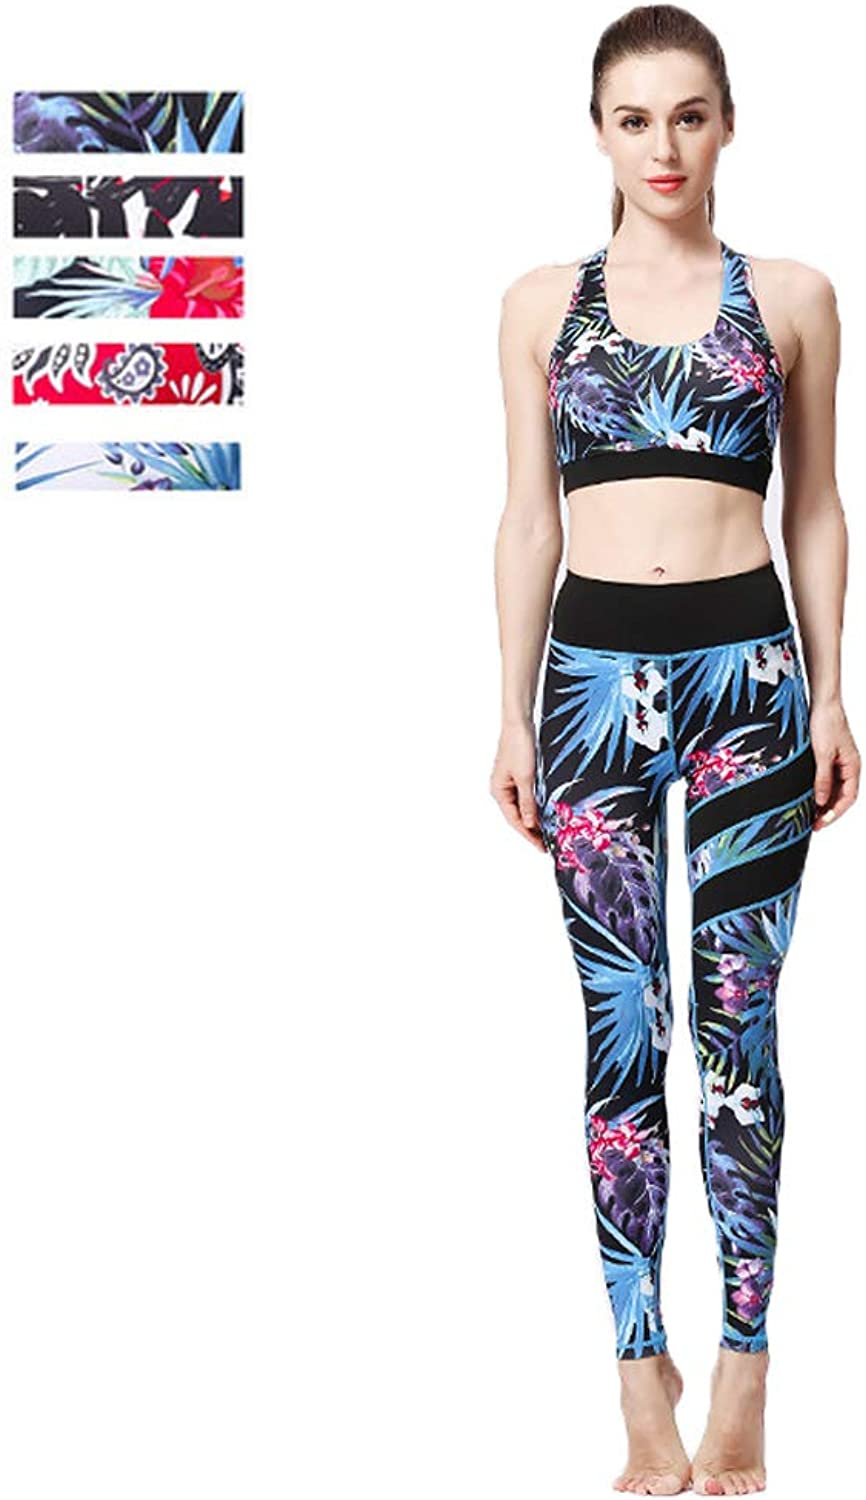 Yoga Clothing Female TwoPiece Sports Bra Tights Printing QuickDrying Flexible Elastic Suitable for Sports and Fitness